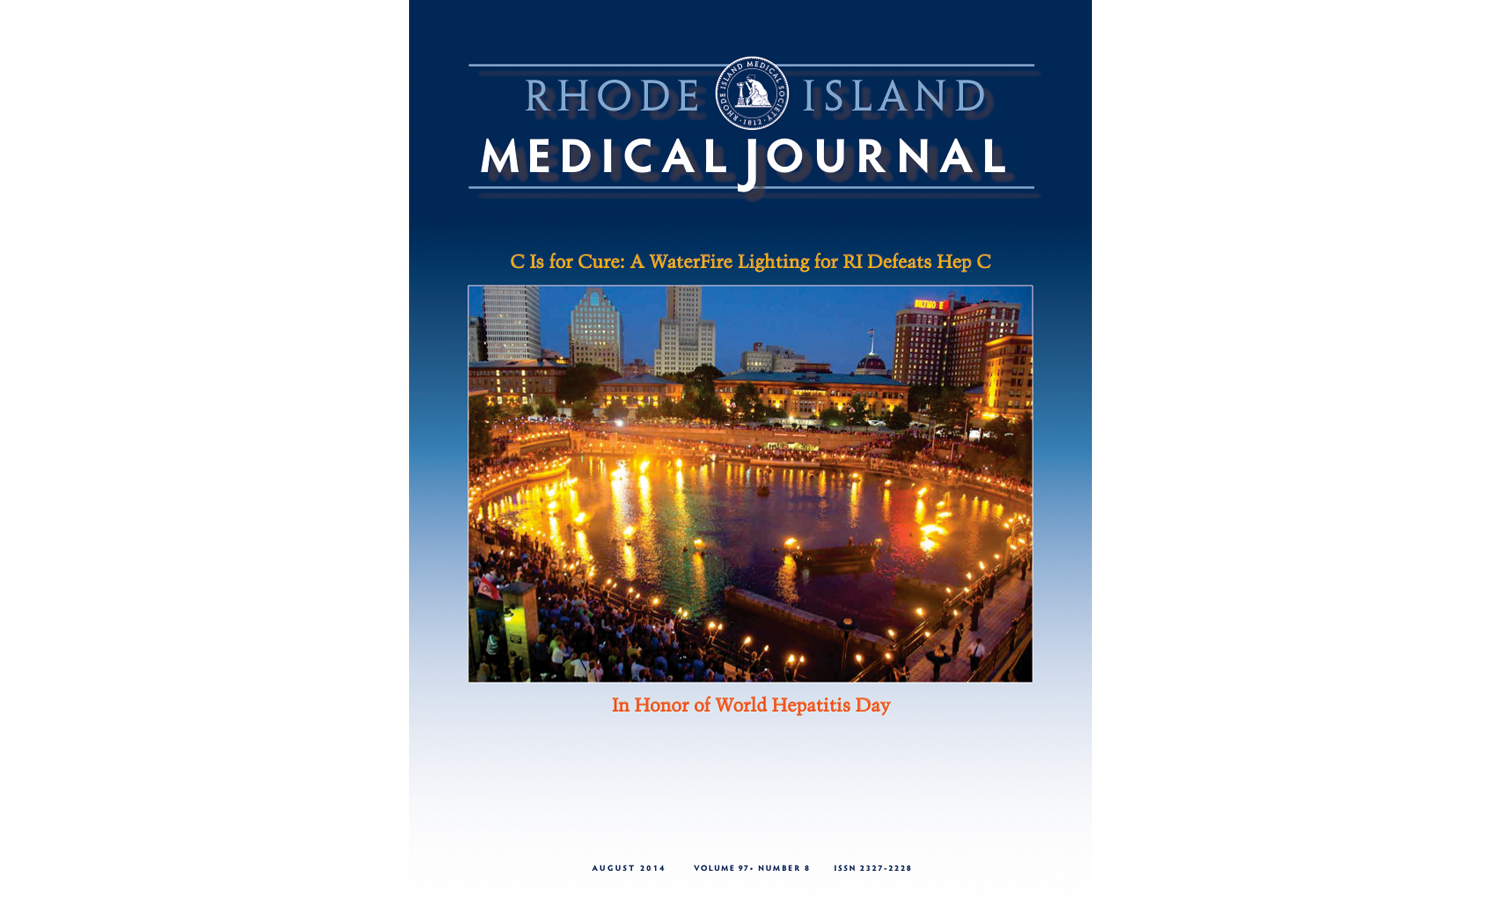 Rhode Island Medical Journal